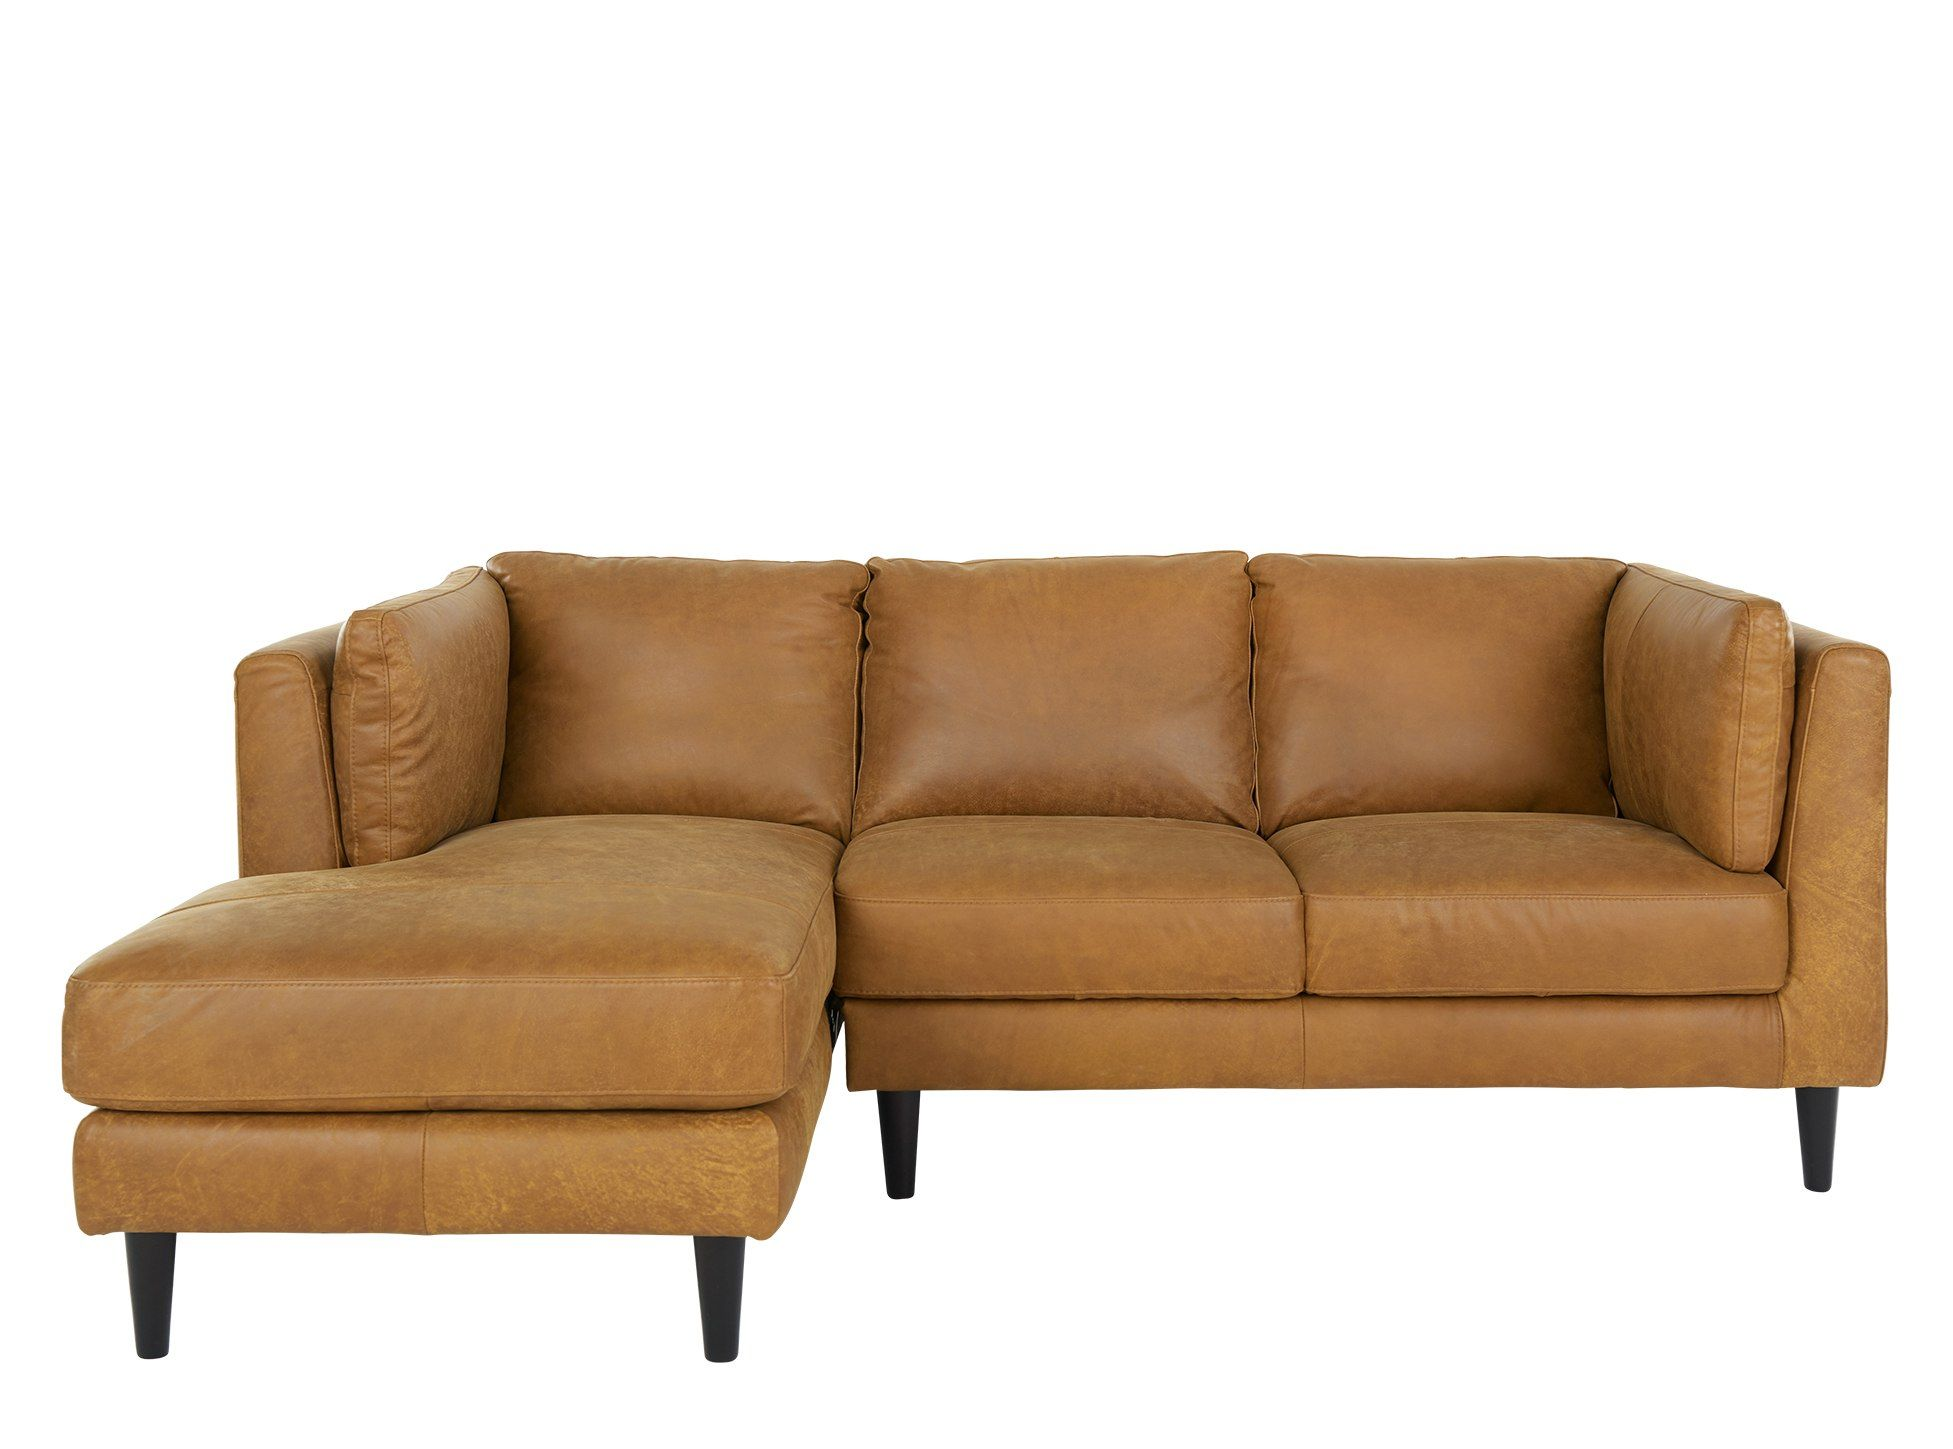 Lindon Left Hand Facing Chaise End Corner Sofa, Outback Tan